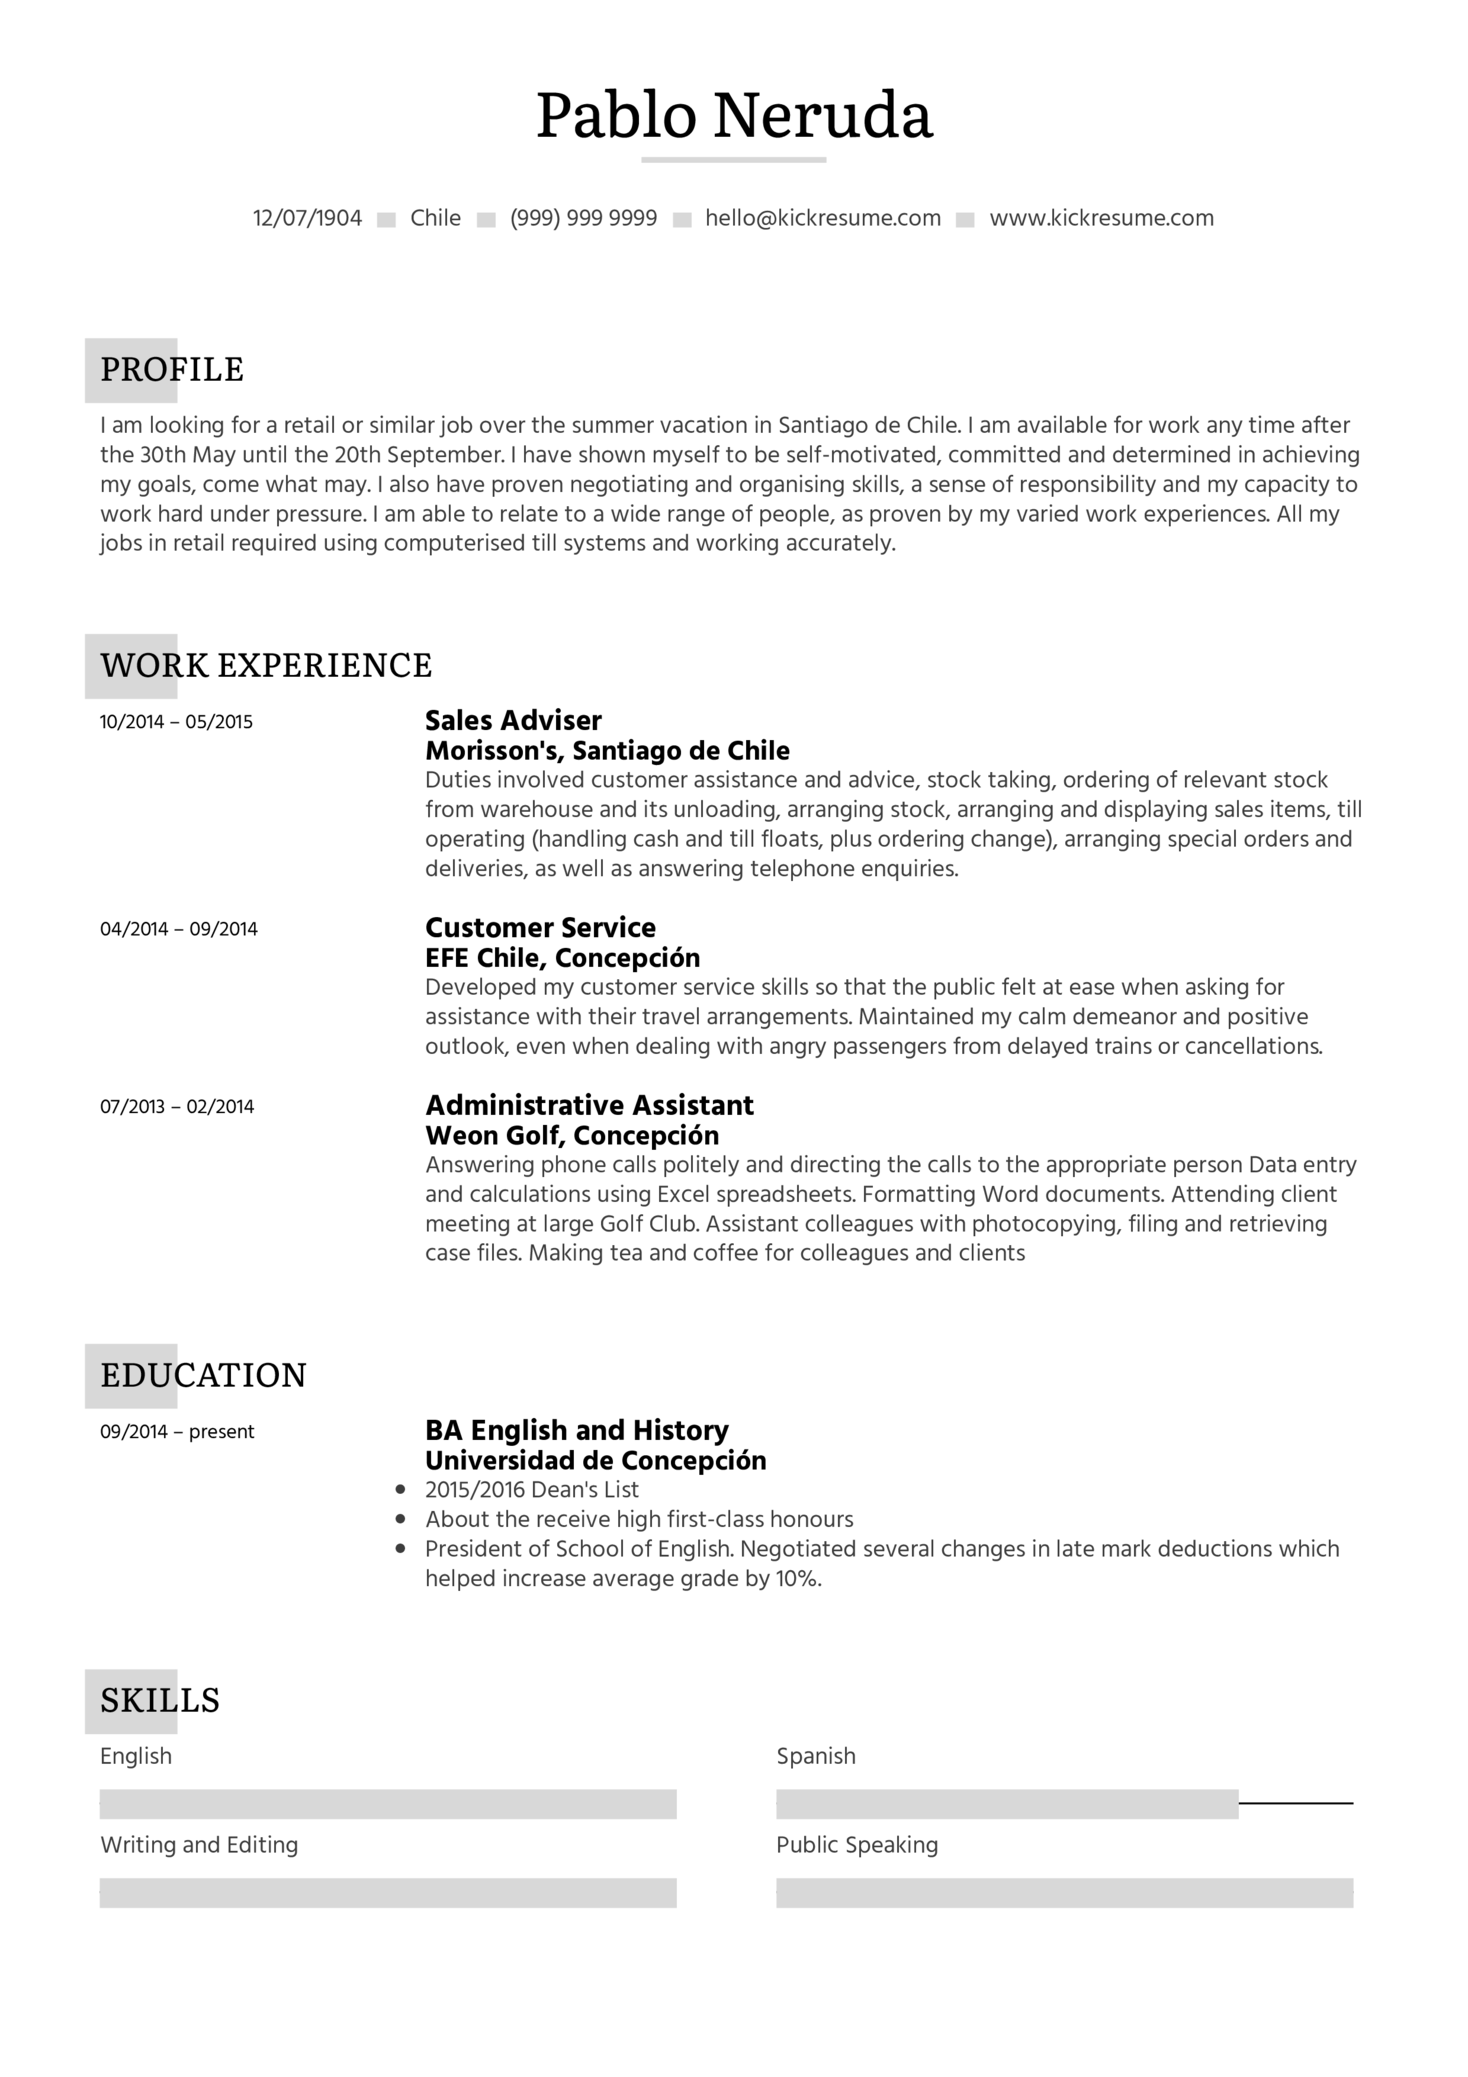 Resume Examples by Real People: Student Resume Summer Job | Kickresume